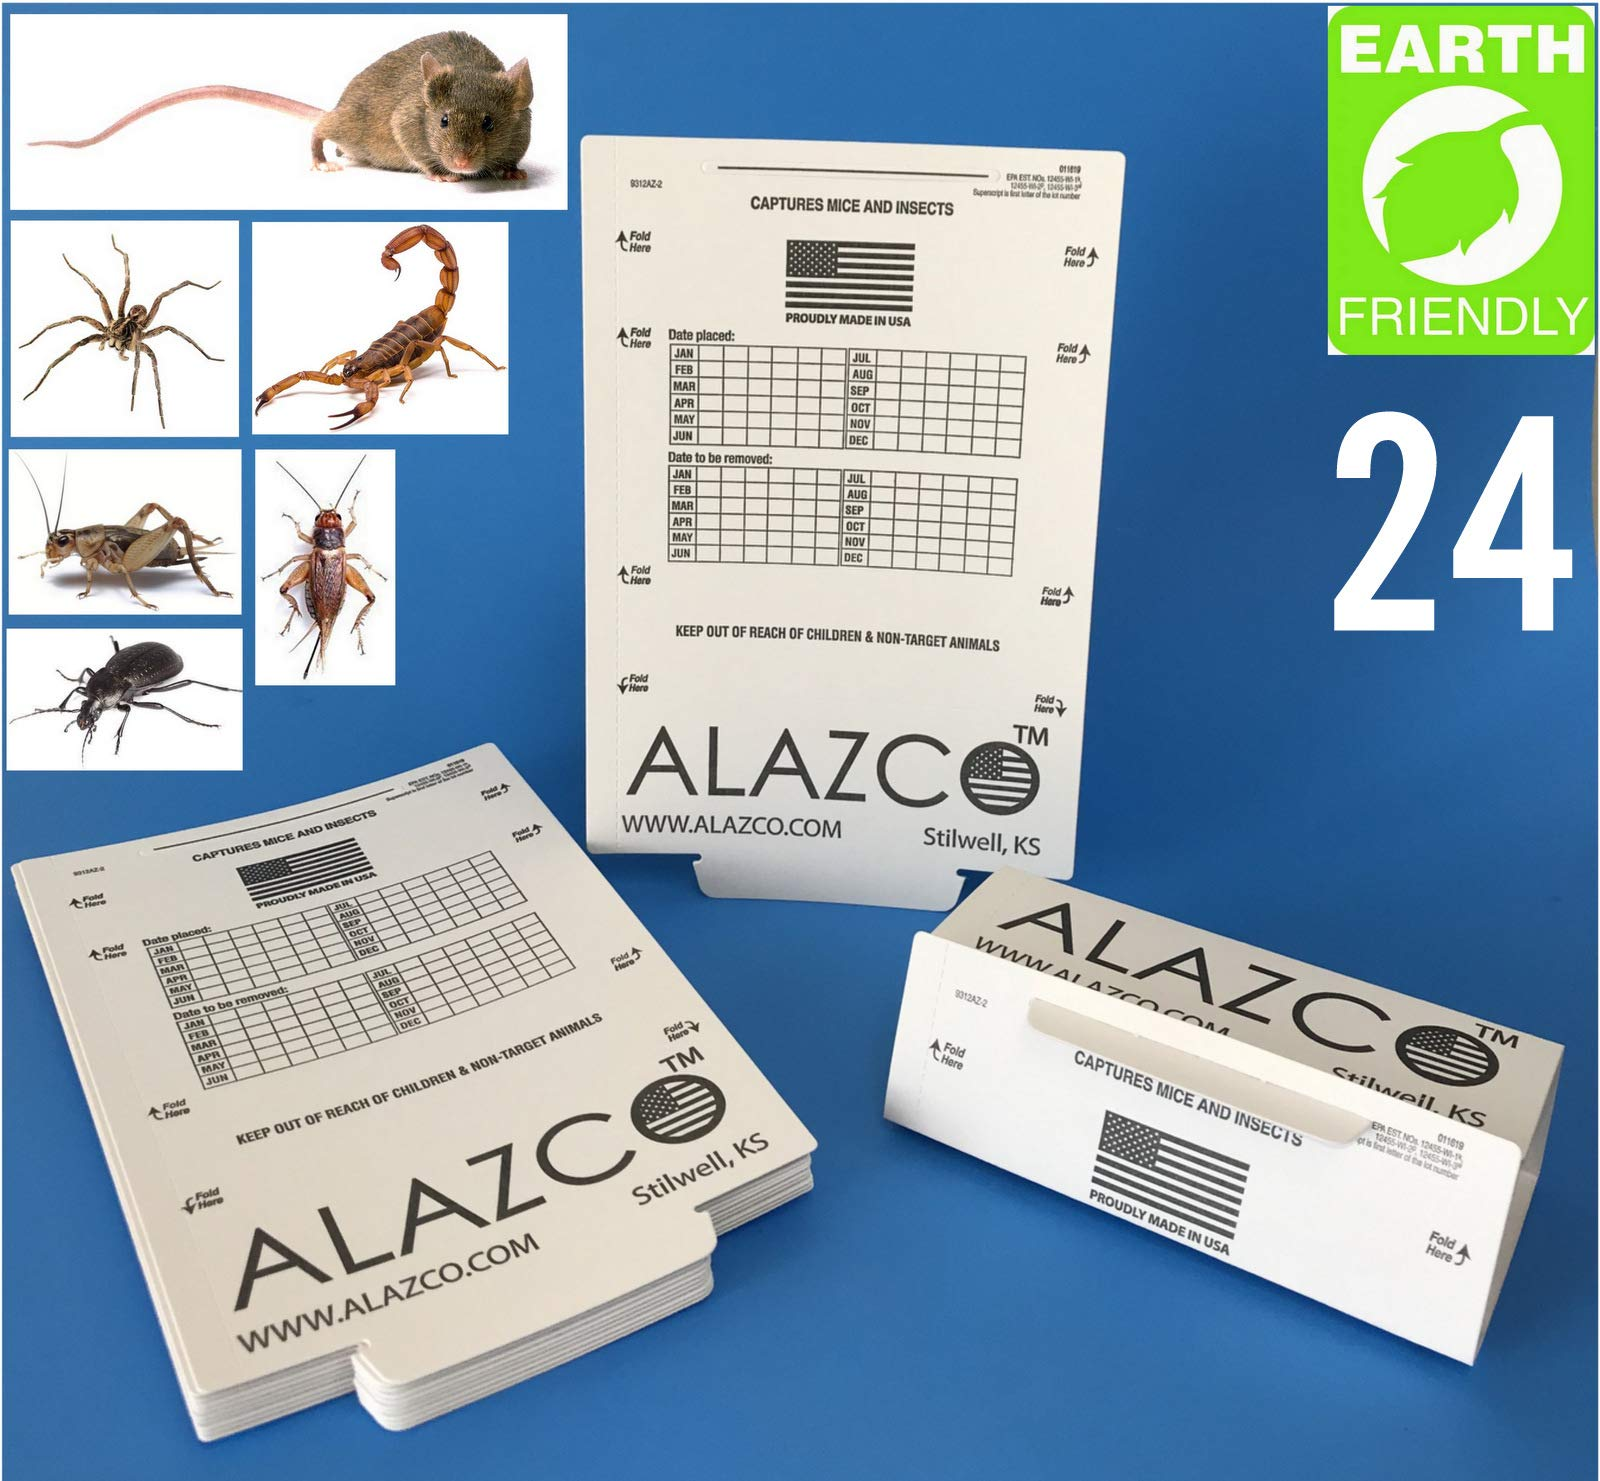 ALAZCO 24 Glue Traps - Excellent Quality Glue Boards Mouse Trap Bugs Insects Spiders, Brown Recluse, Crickets Cockroaches Lizard Scorpion Mice Trap & Monitor Non-Toxic Made in USA by ALAZCO